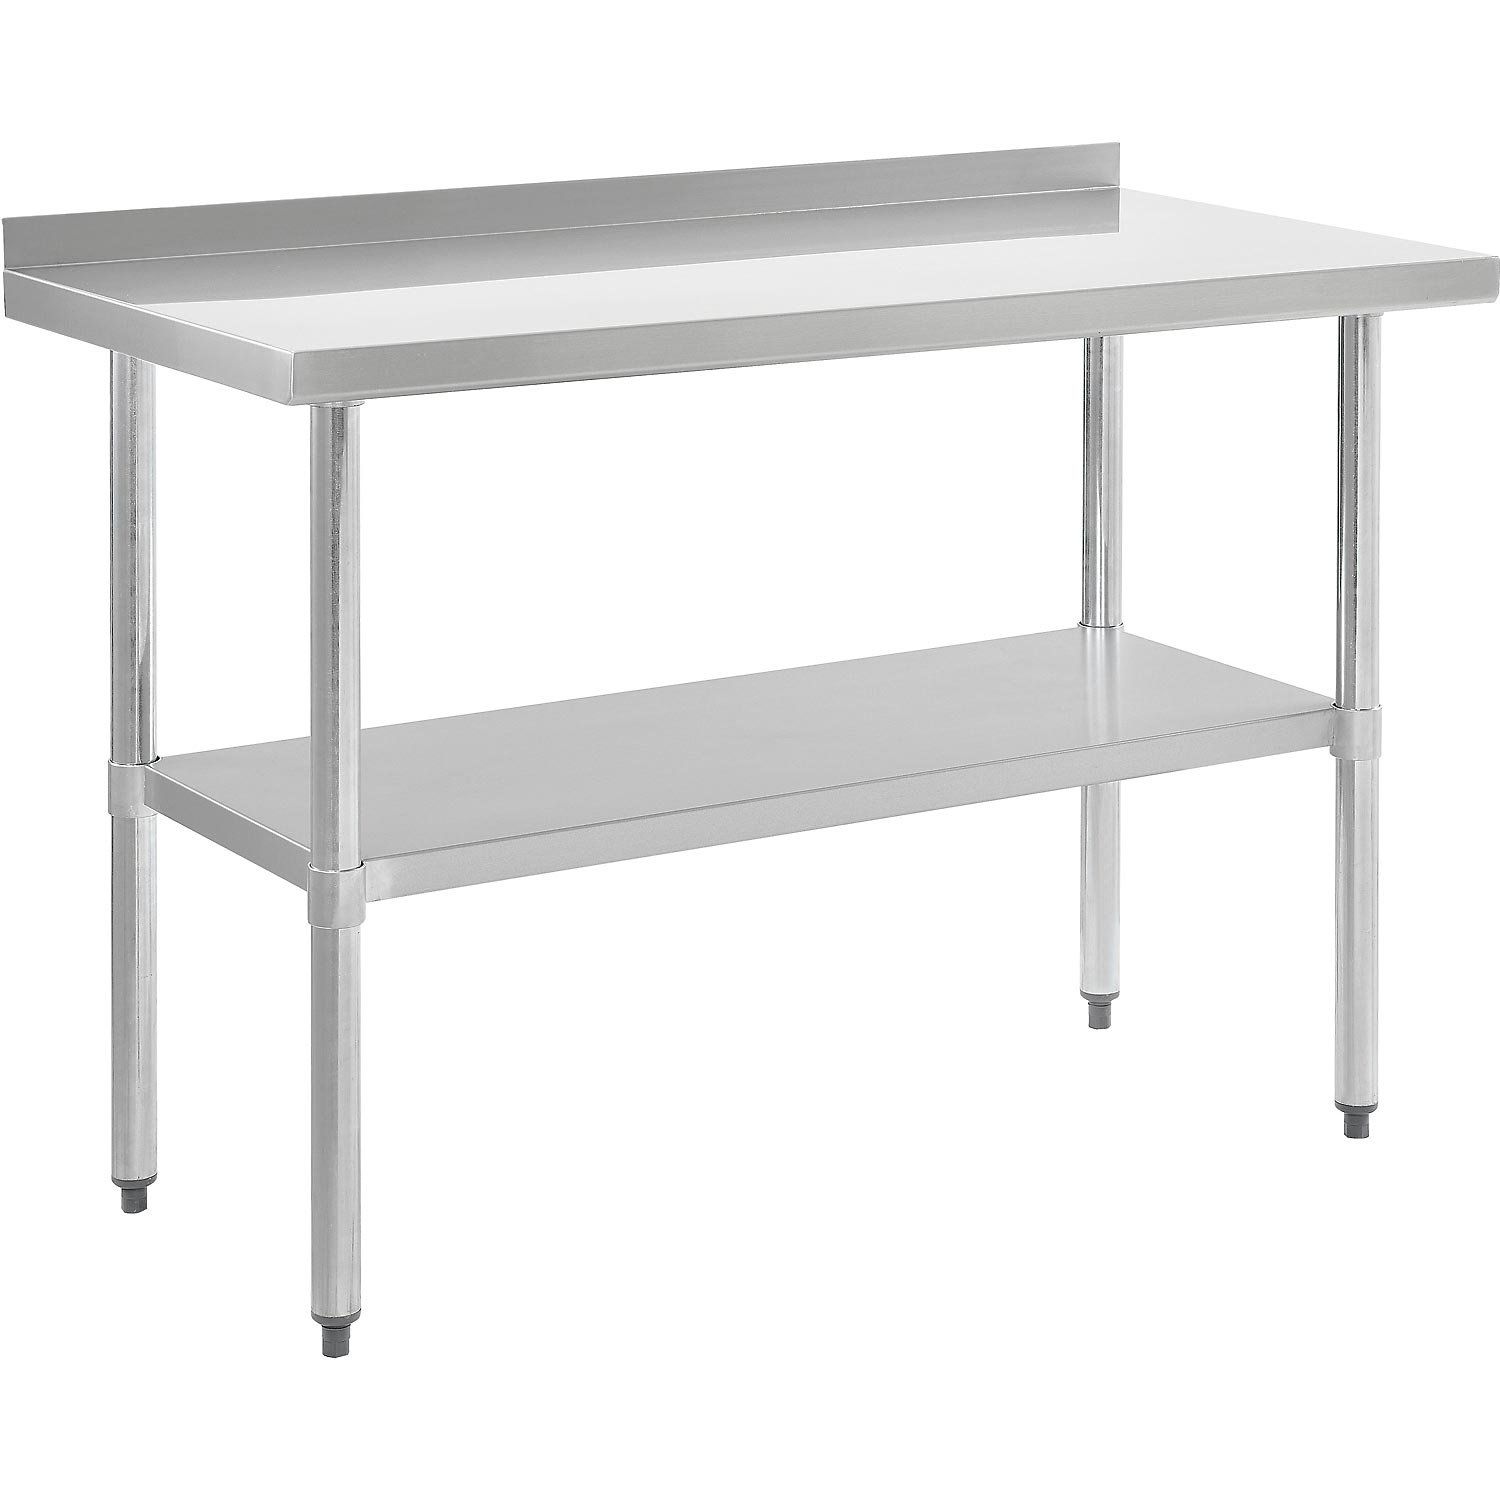 Nexel WB7230BSS Stainless Steel Worktable with Backsplash, 72''W x 30''D x 35''H